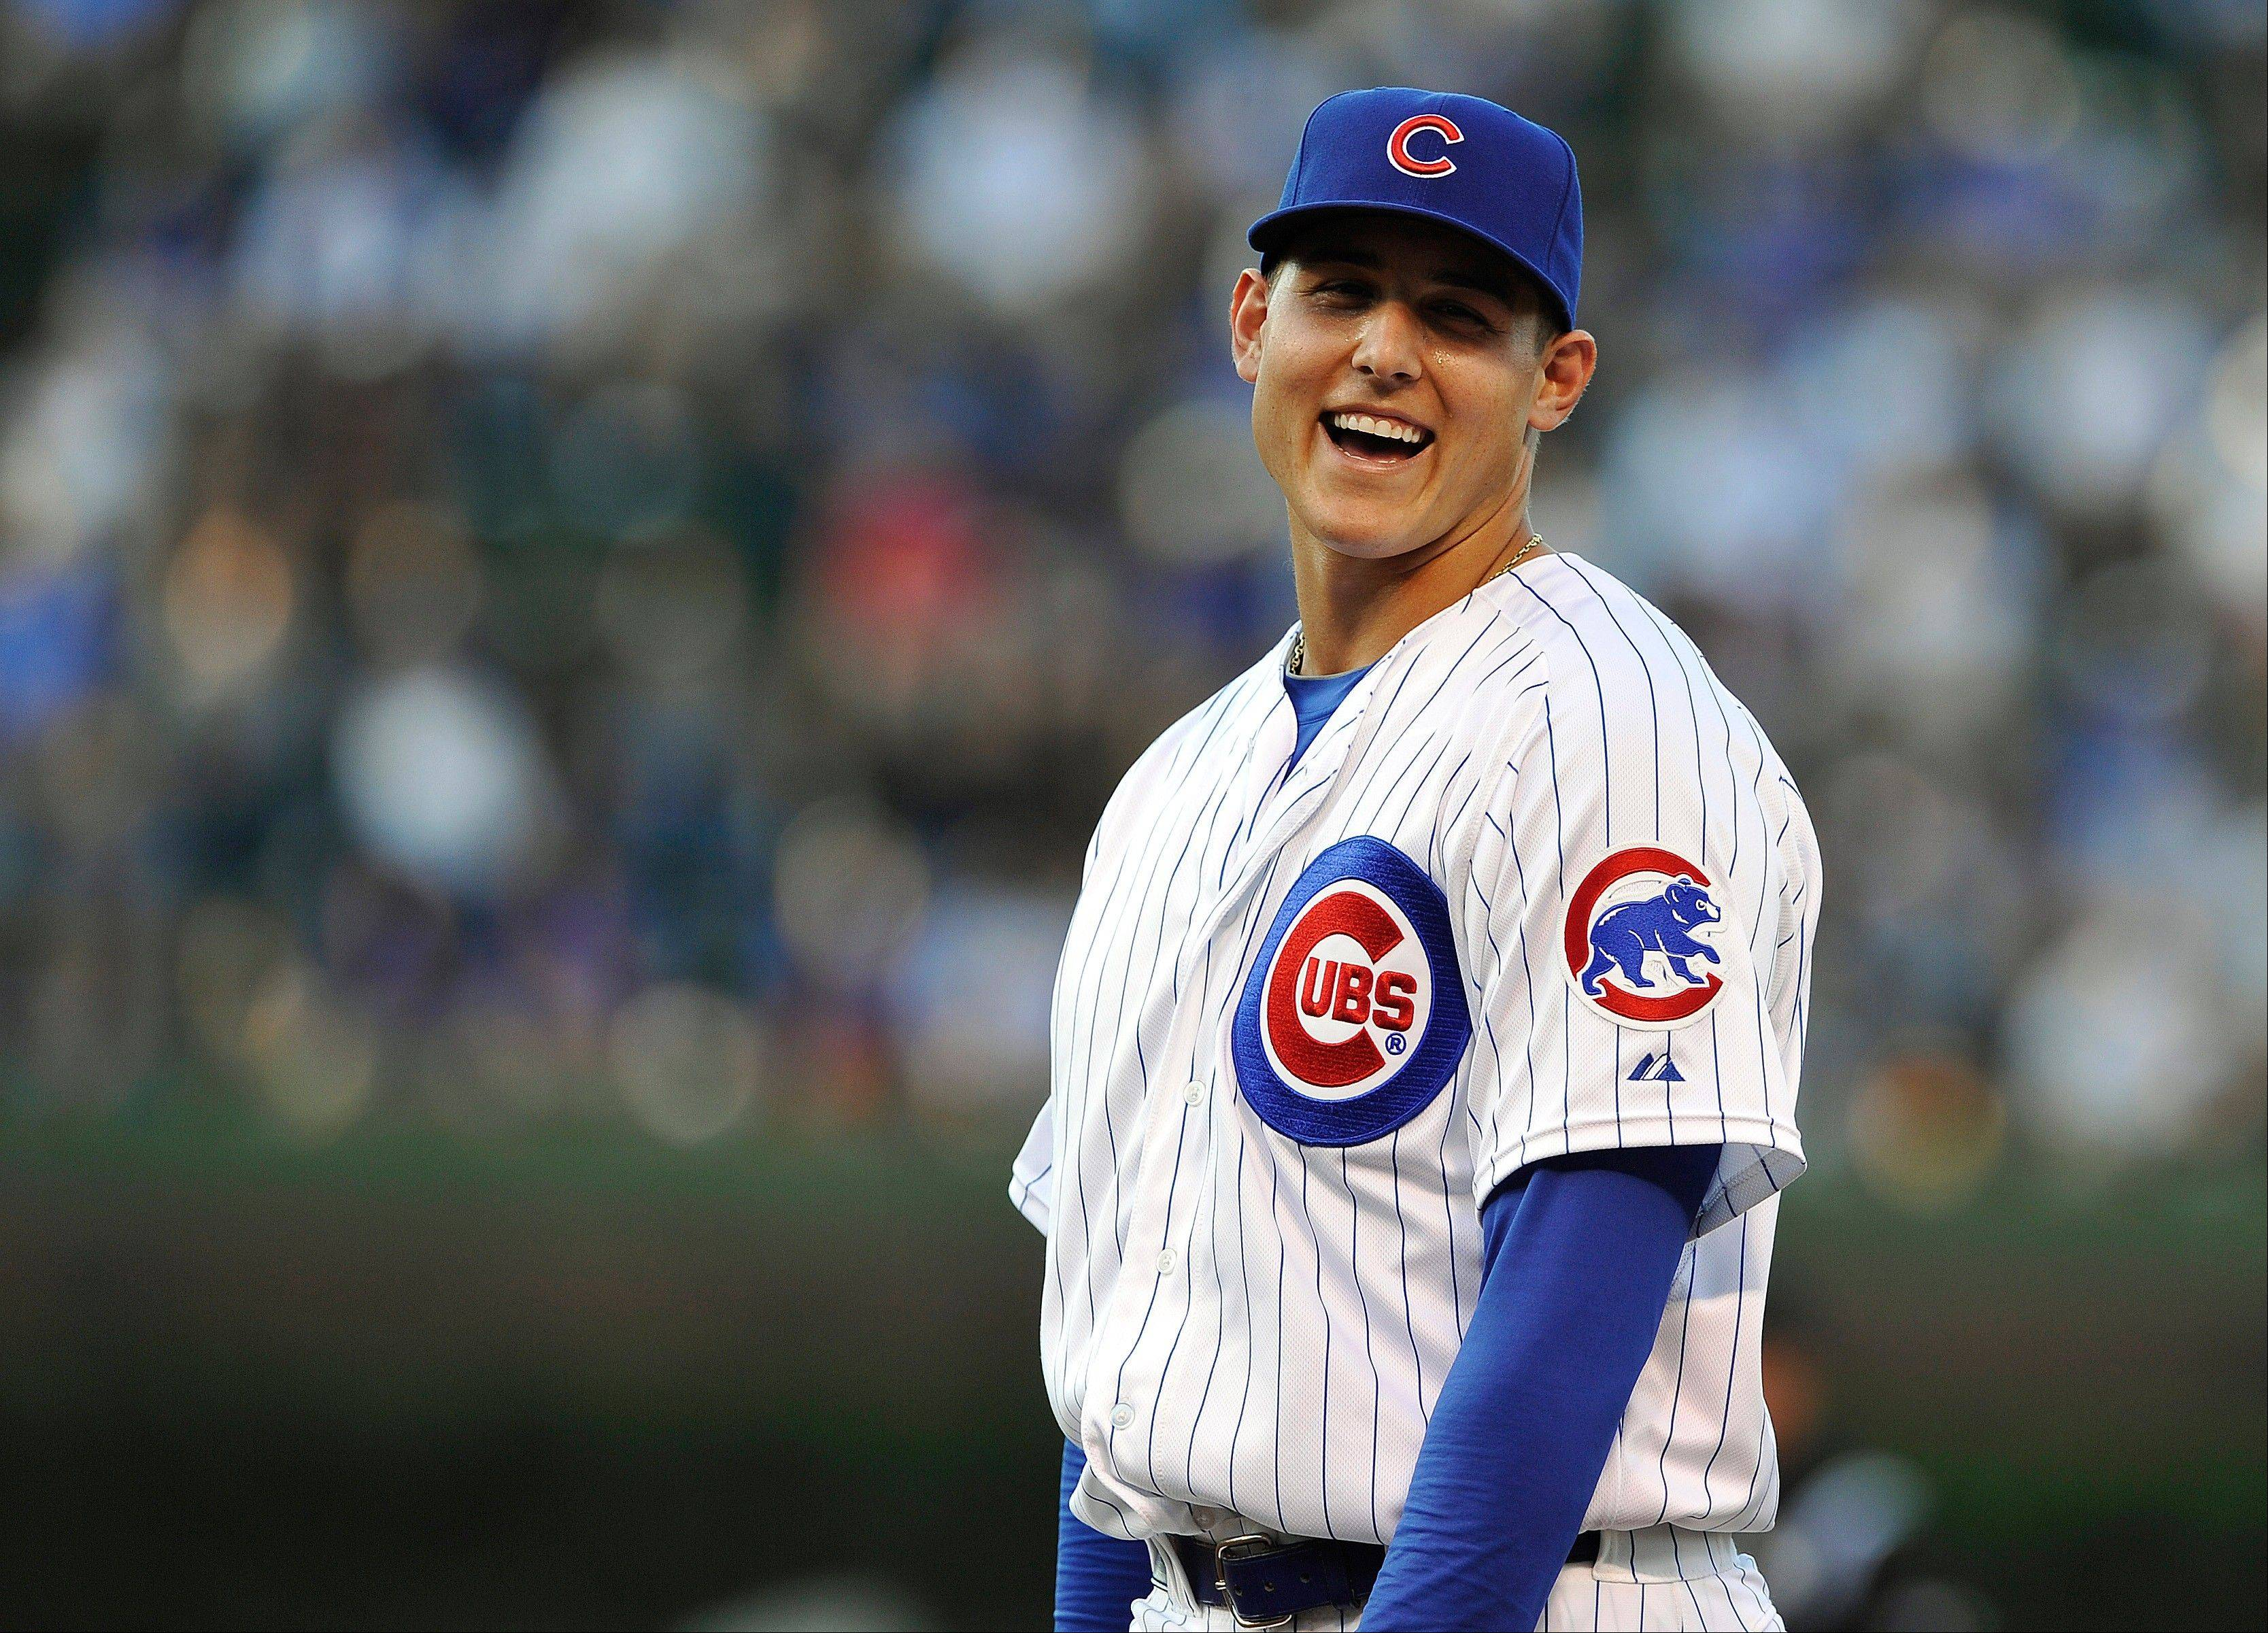 Anthony Rizzo has delivered plenty of smiles to Cubs fans since he joined the big club. Rizzo, who had an eight-game hitting streak snapped Sunday, has delivered 4 game-winning RBI.